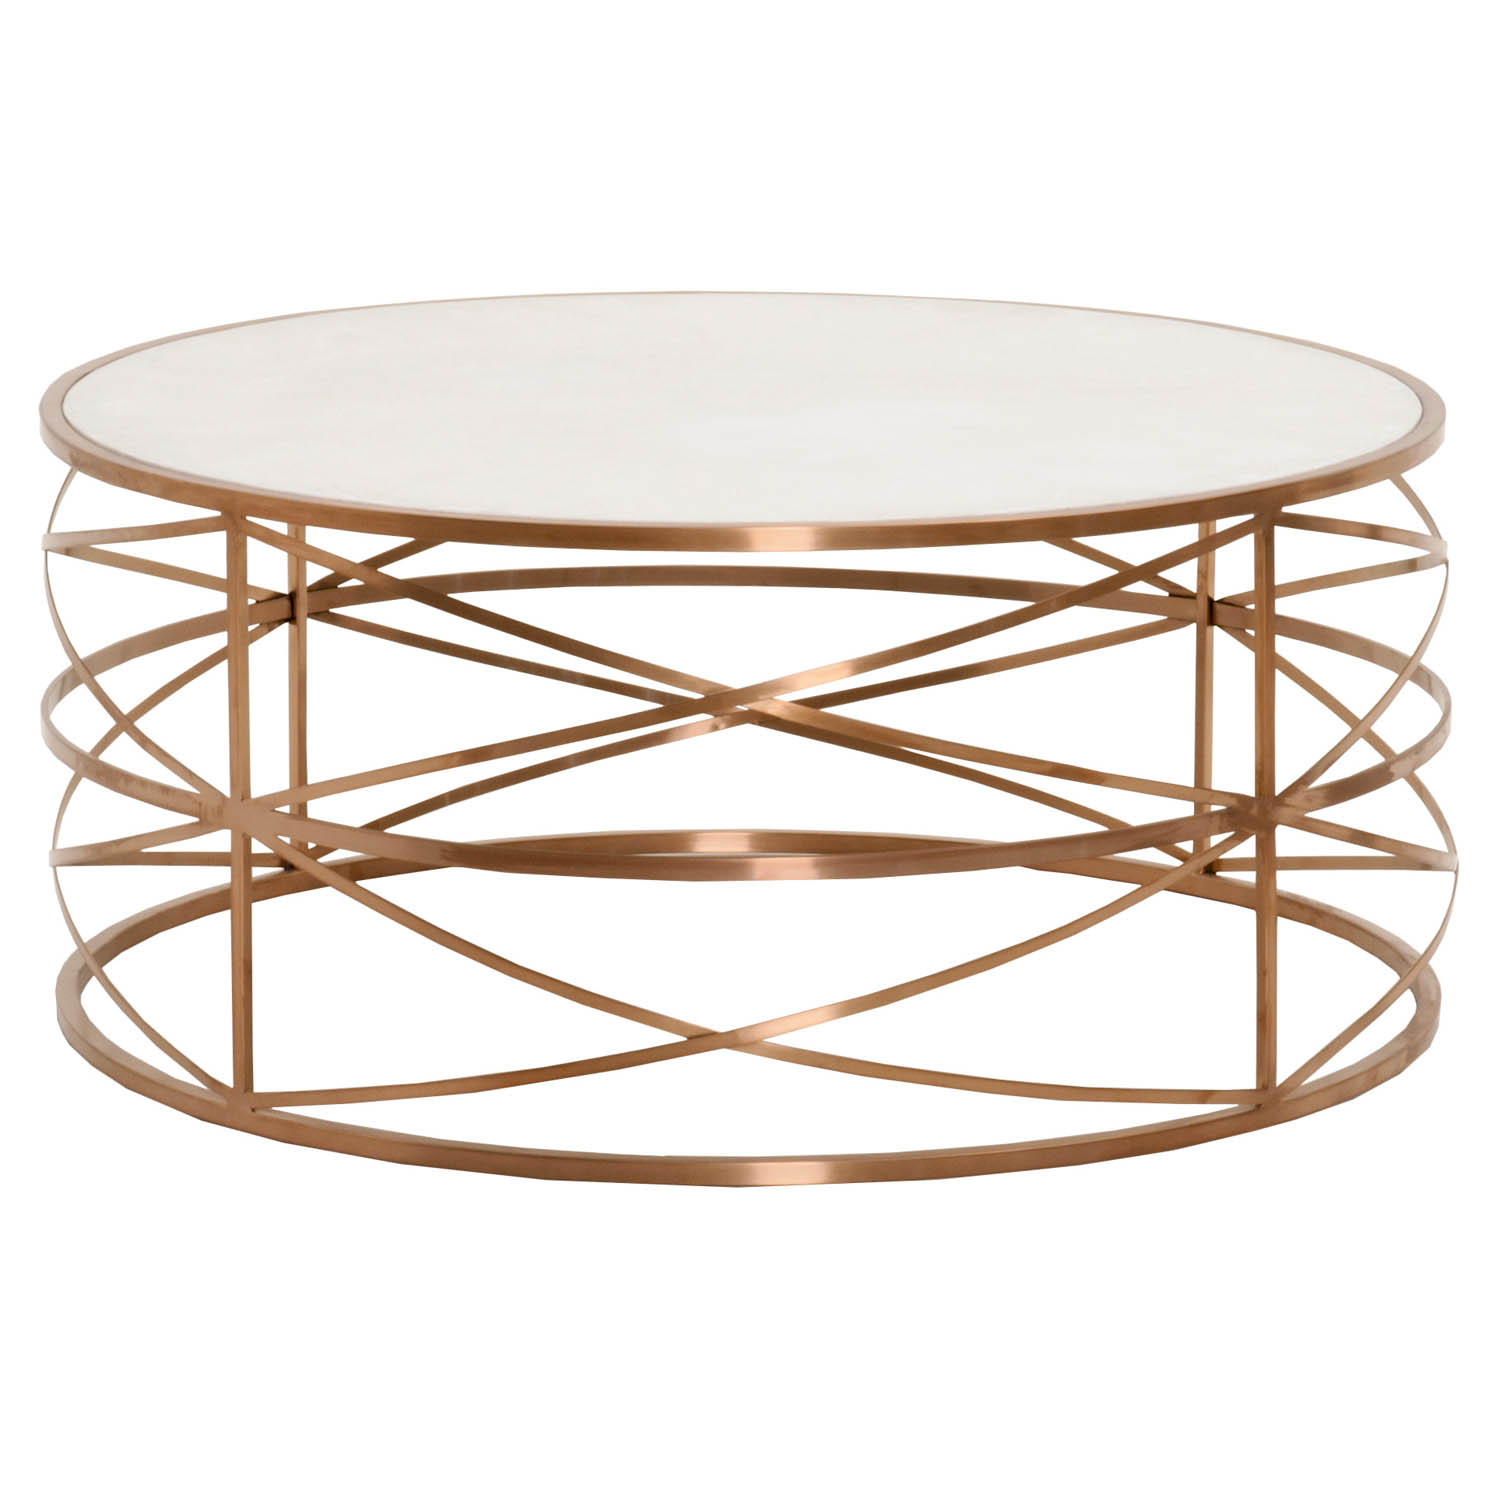 Gold Coffee Table Uk: MELROSE ROUND COFFEE TABLE